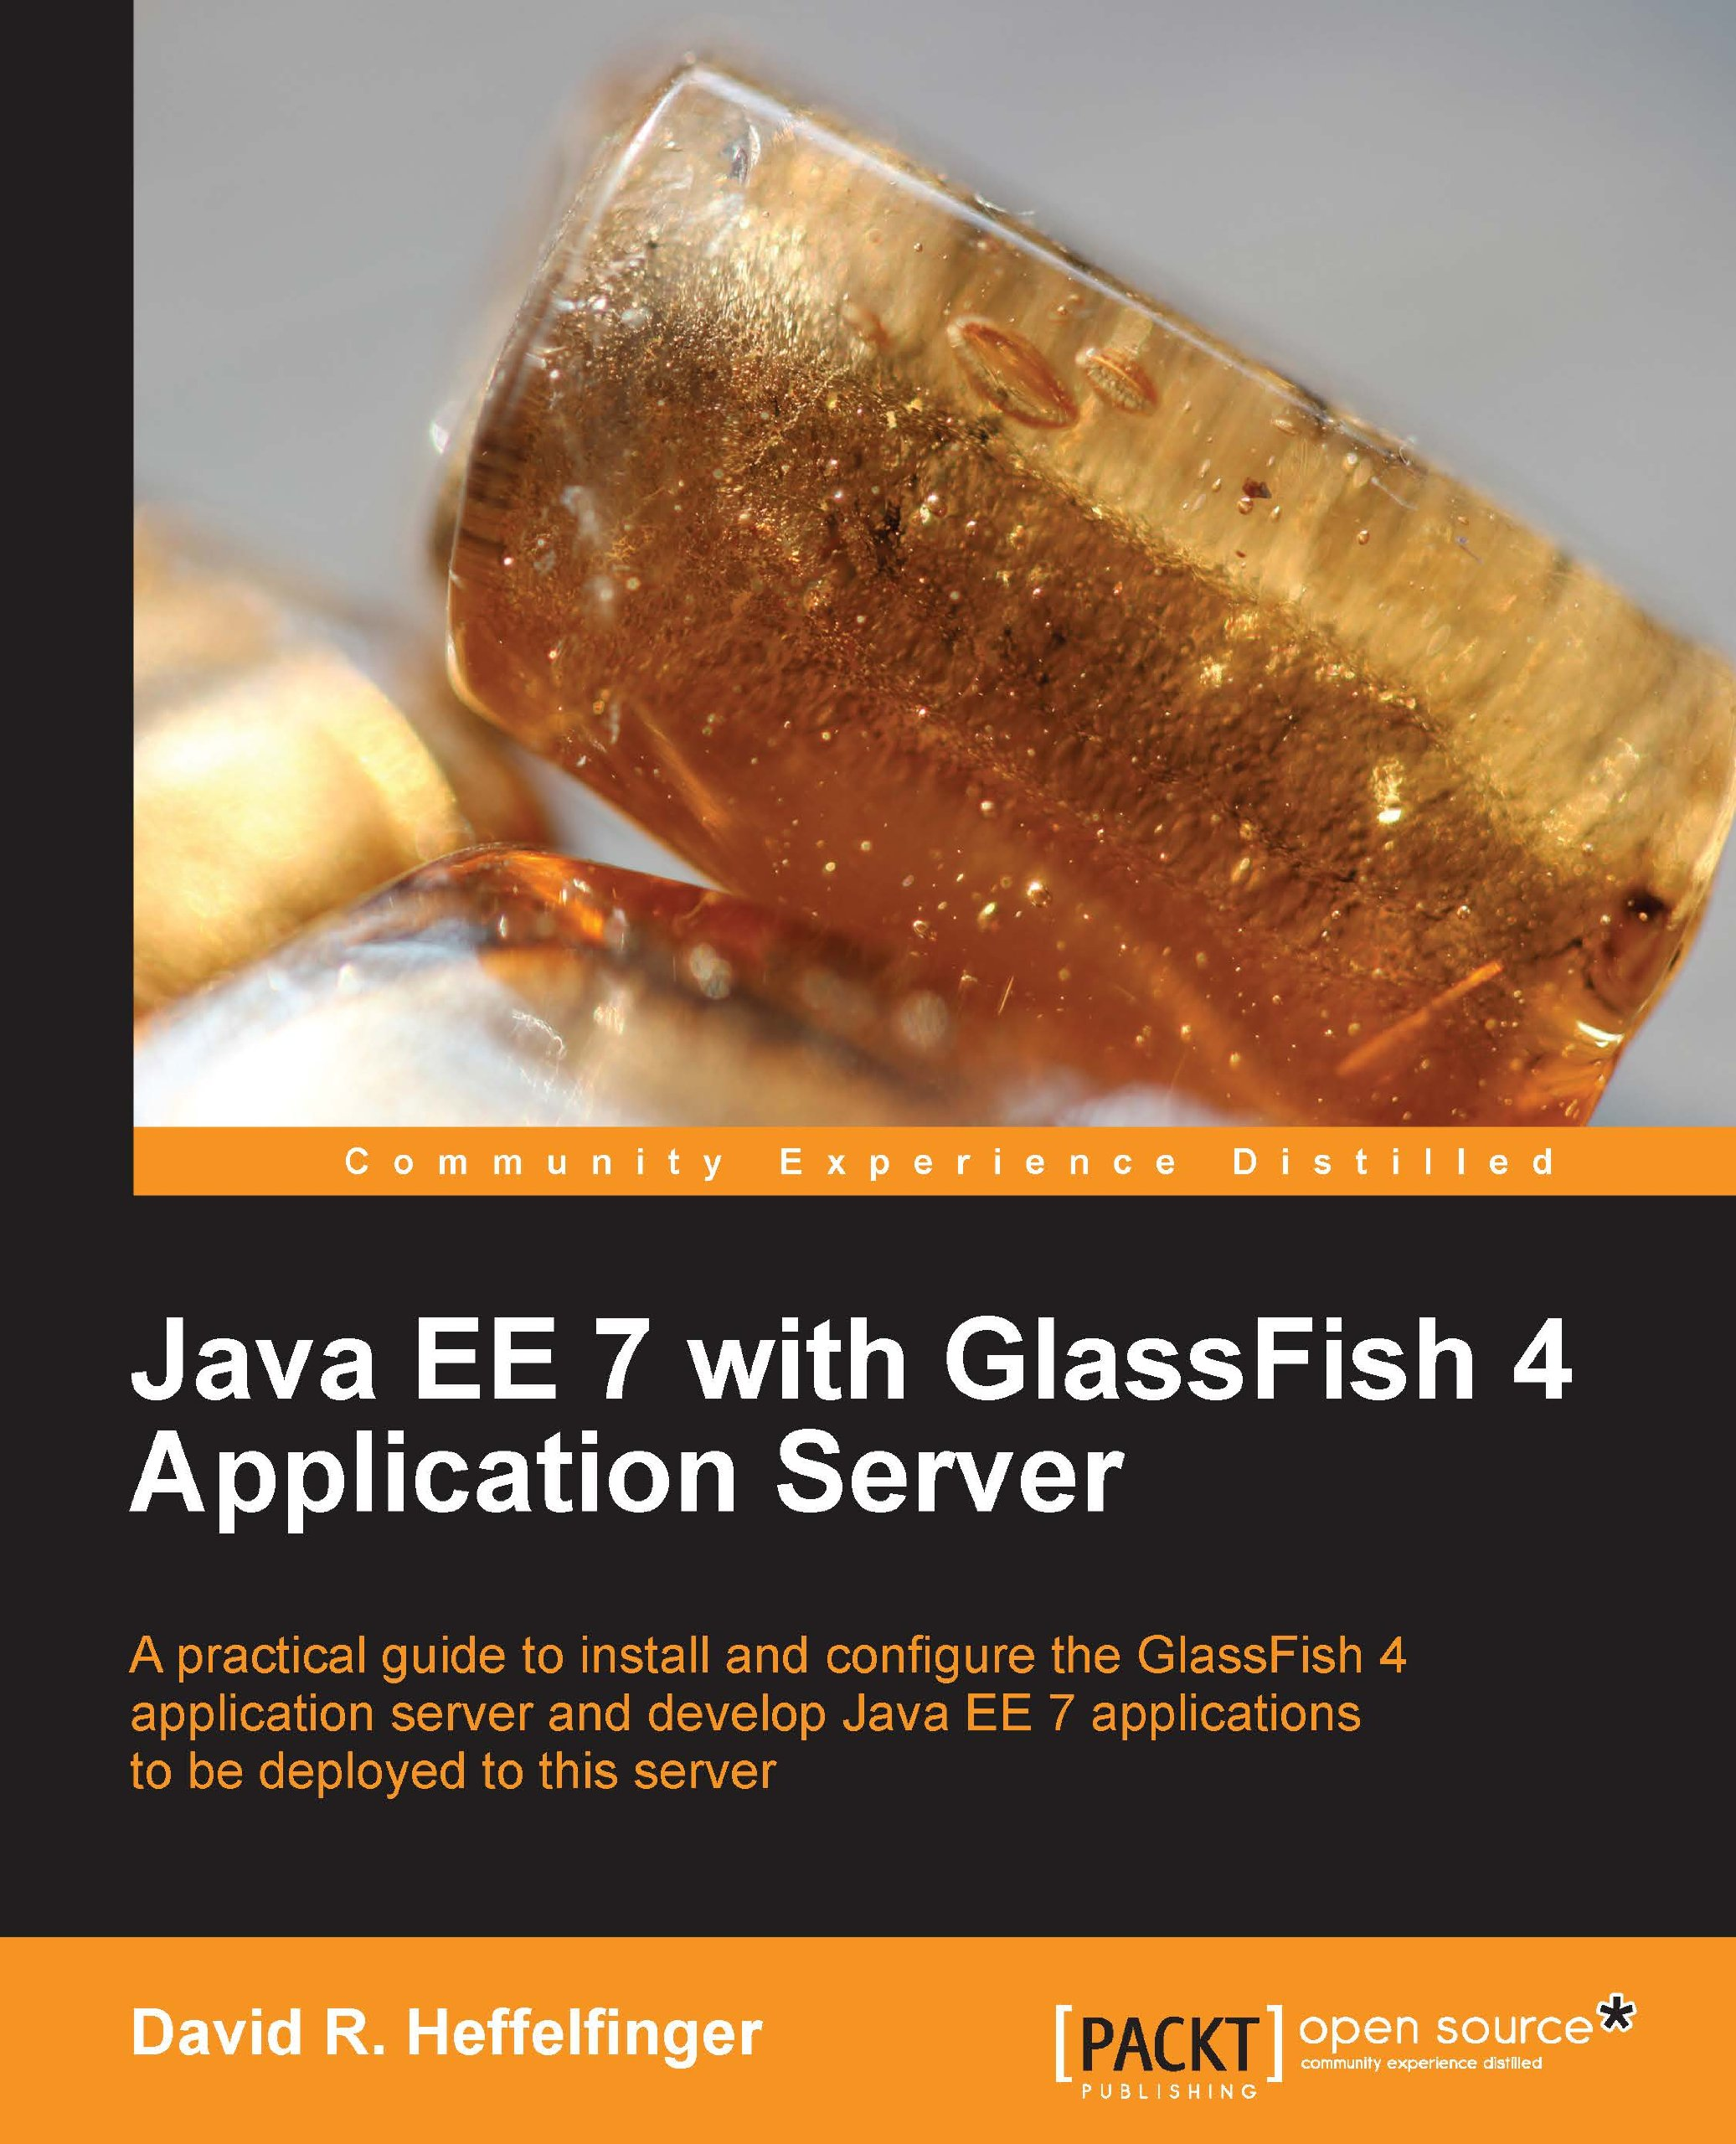 Java EE 7 with GlassFish 4 Application Server